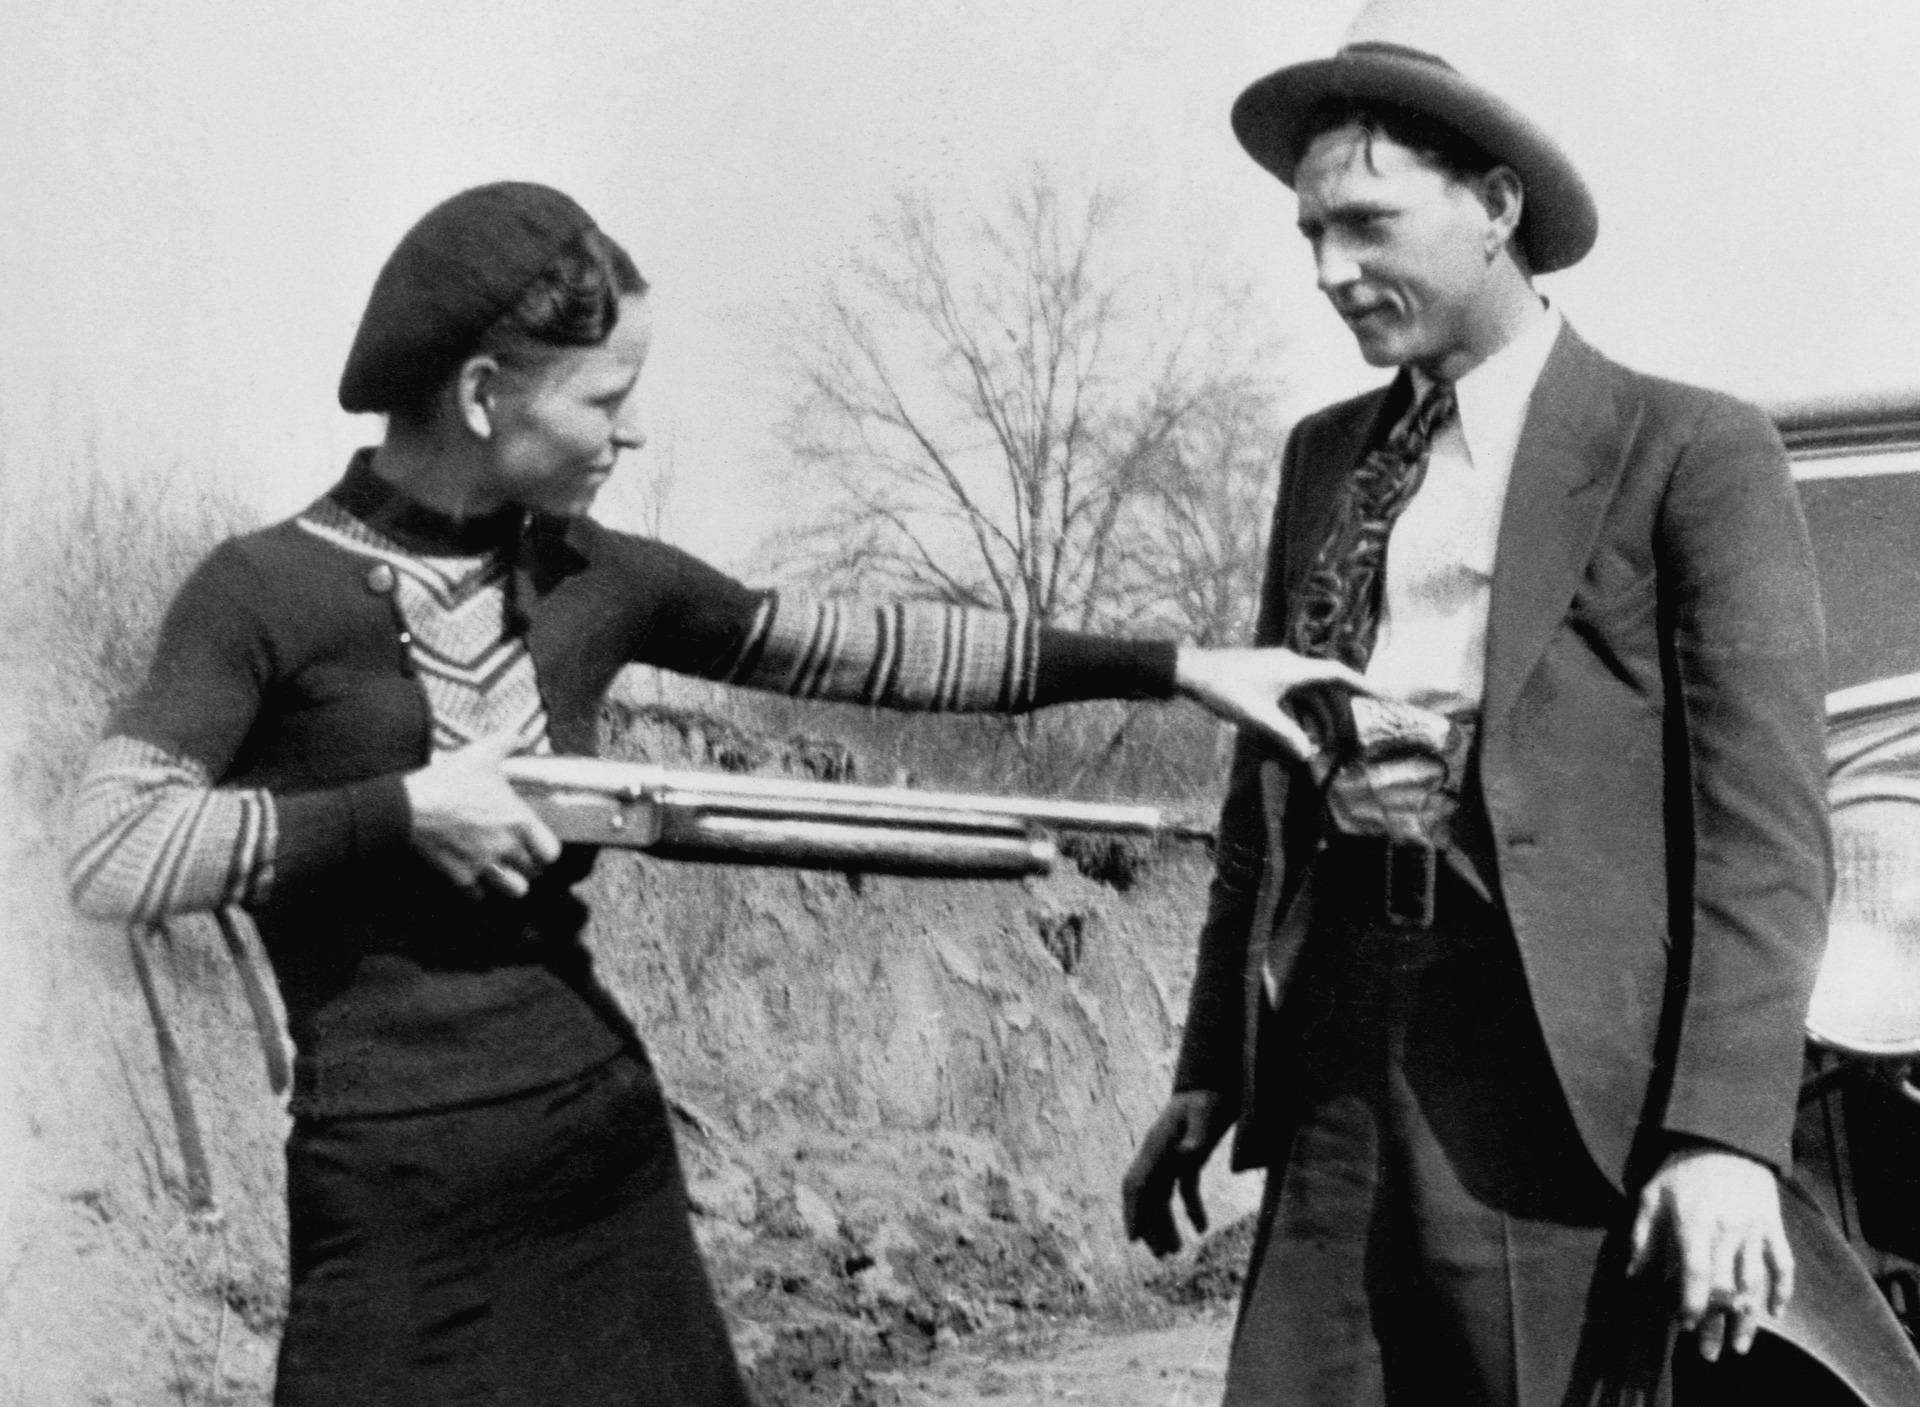 Lovers on the run: Why Bonnie and Clyde continue to